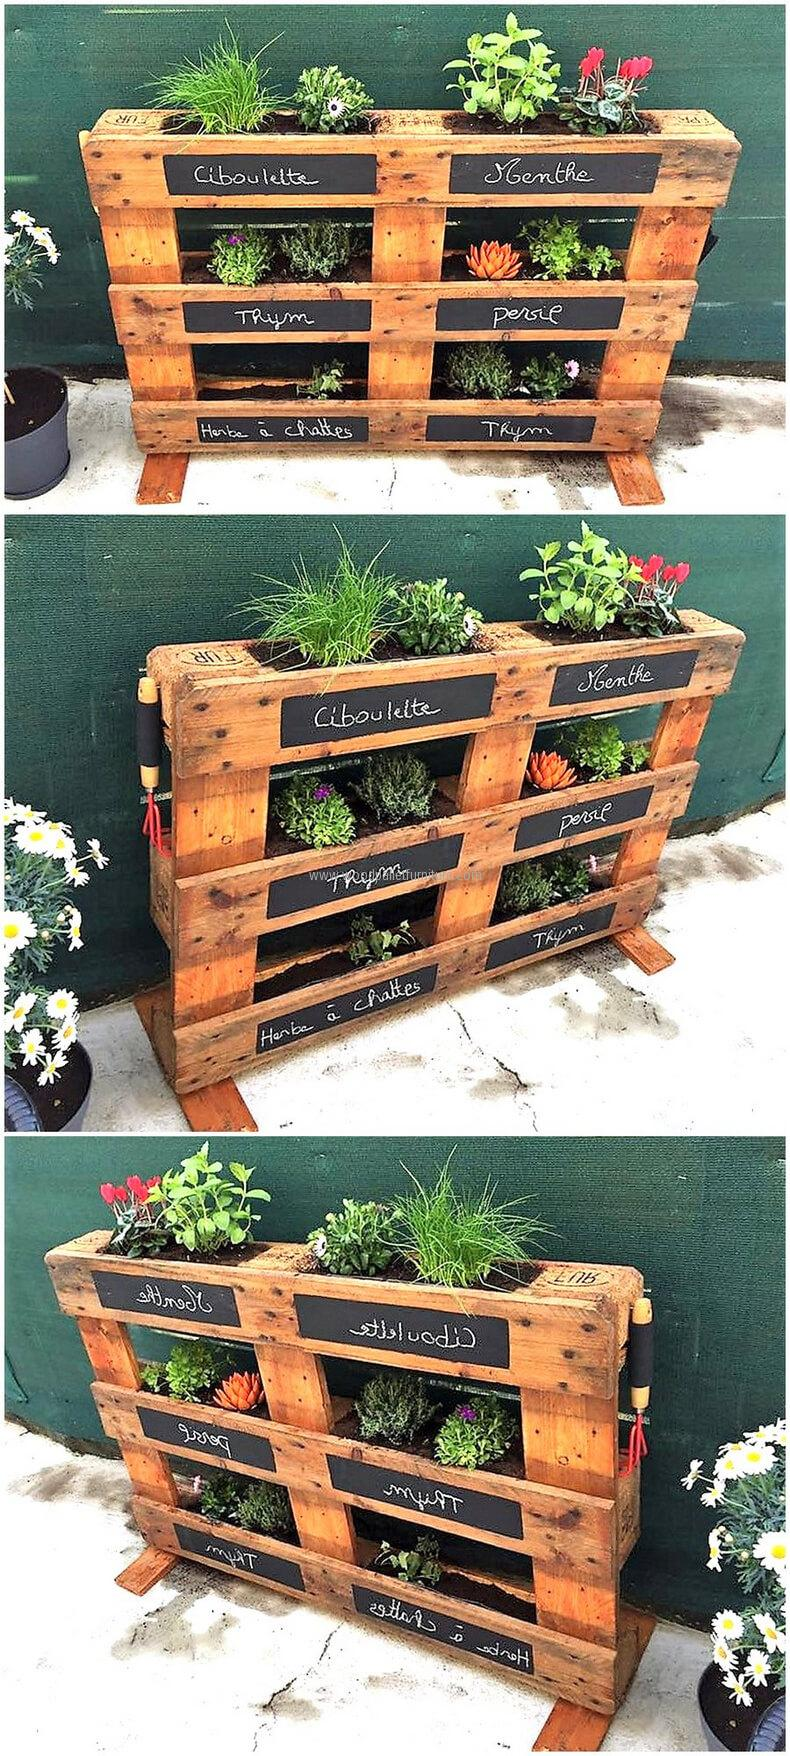 We have shown the reclaimed wood pallet herb planter idea here with which one can decorate the home with the herbs and flowers